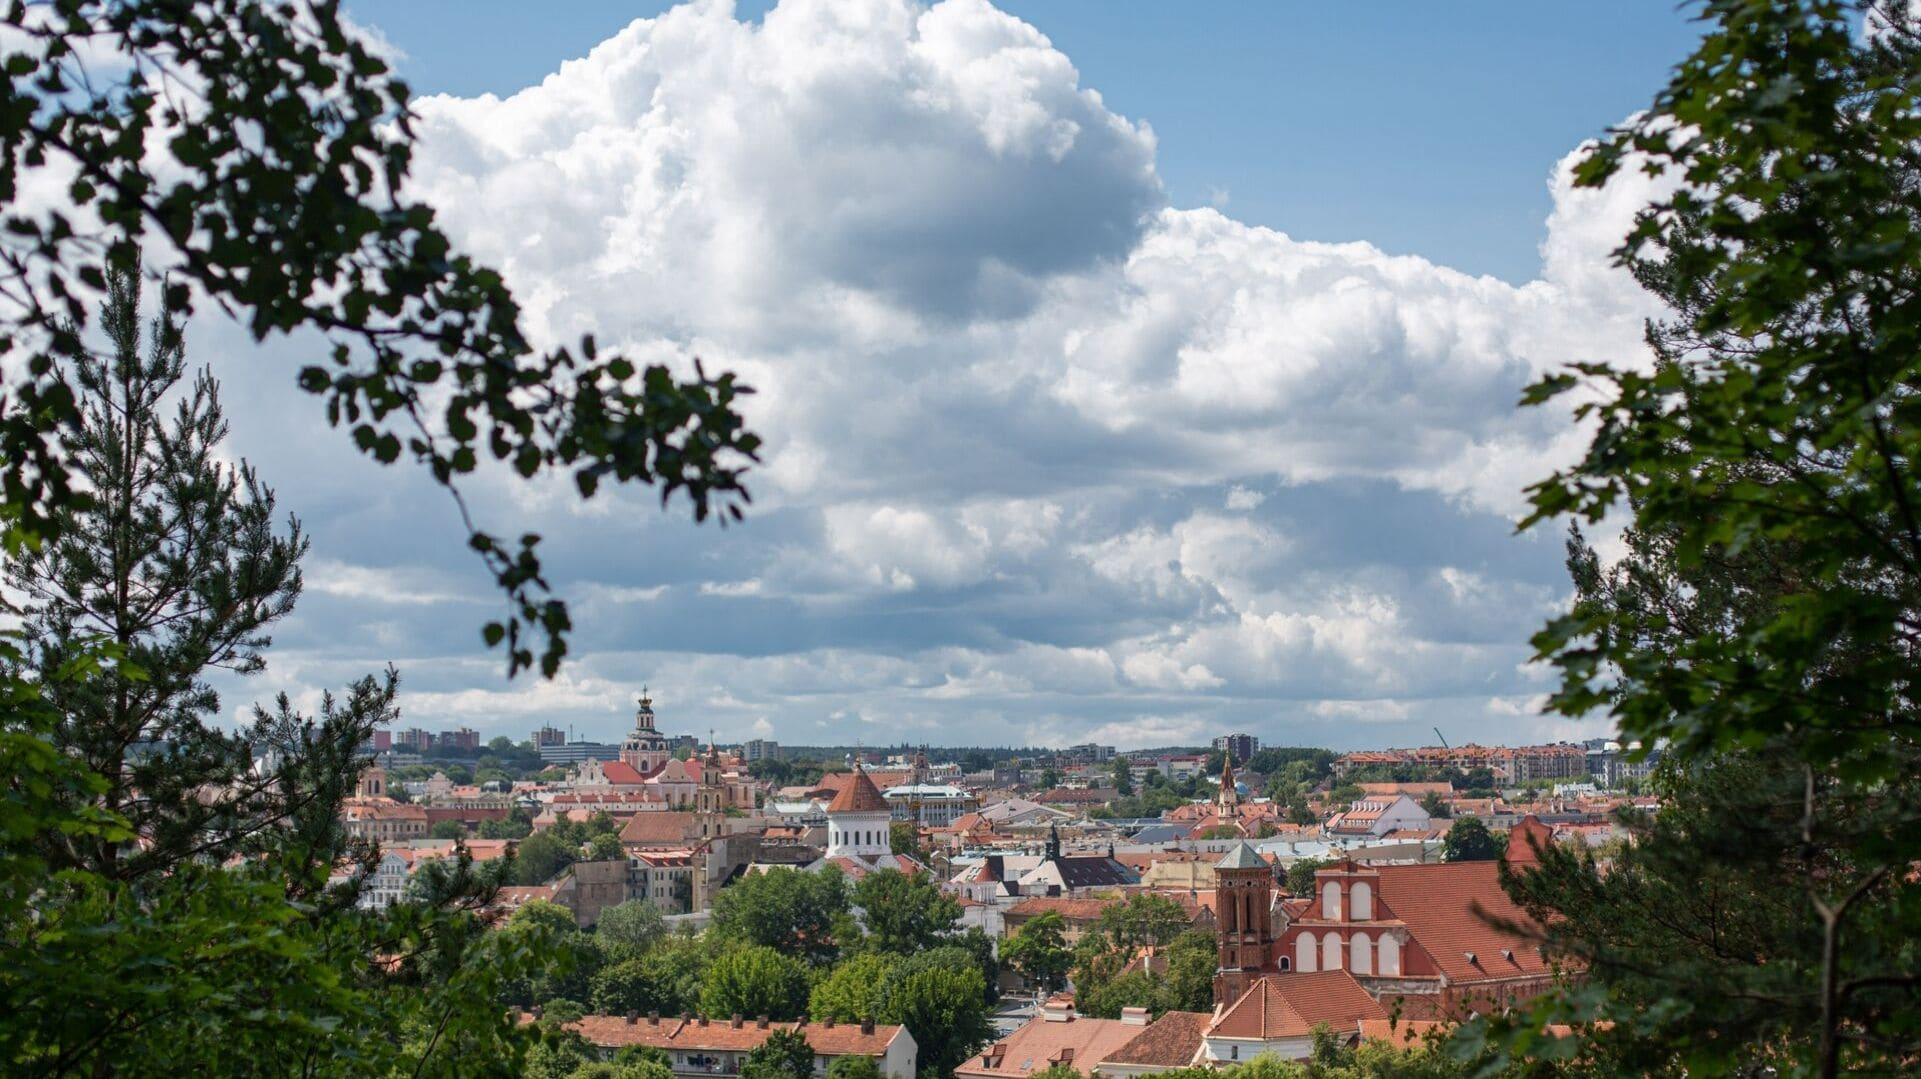 Finding Vilnius on a journey through Lithuania — a hidden jewel by the Baltic Sea - Firstpost